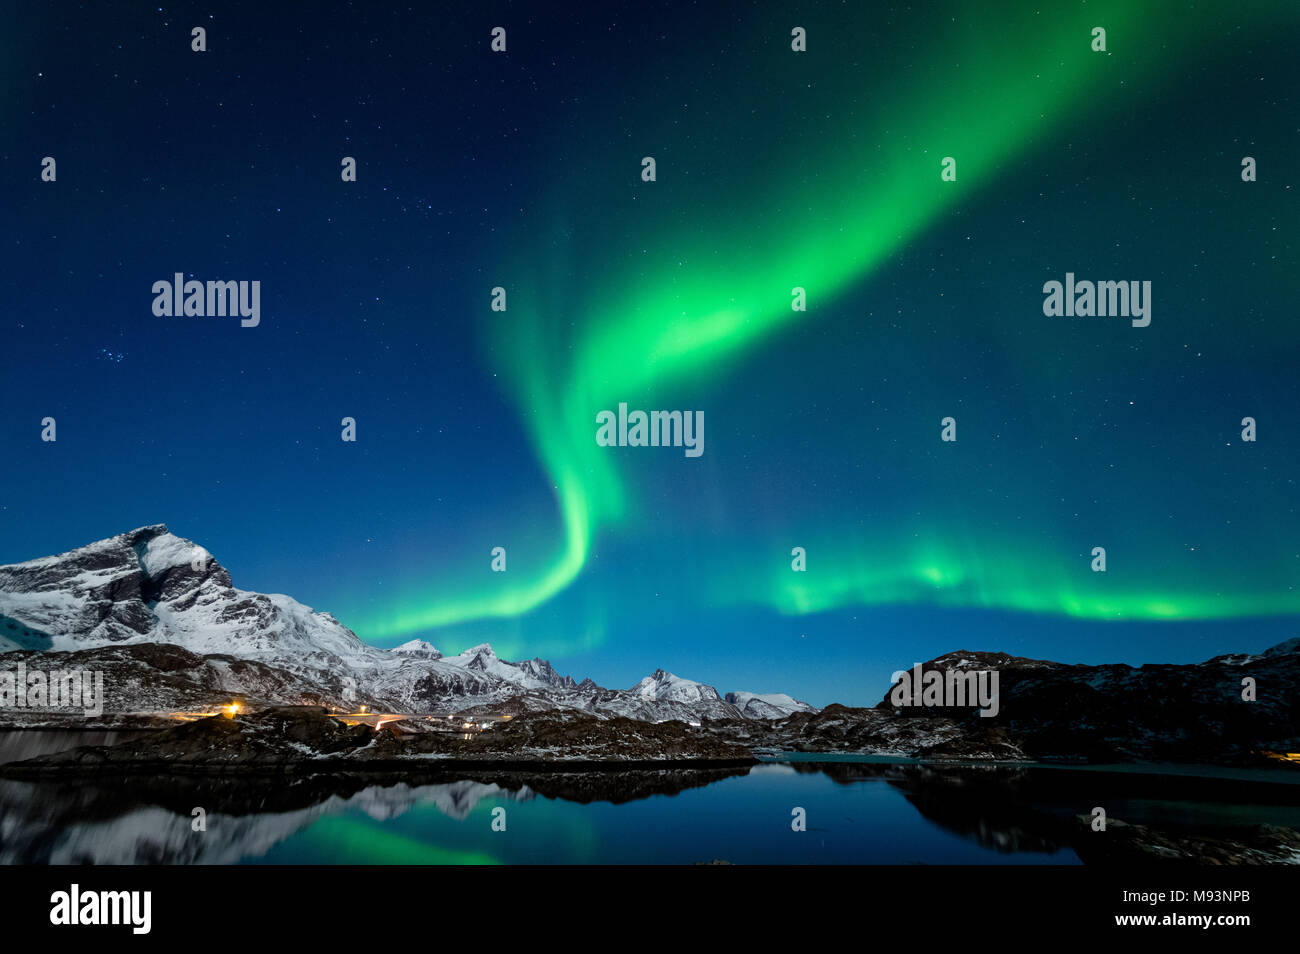 Northern Lights in Lofoten, Norway - Stock Image